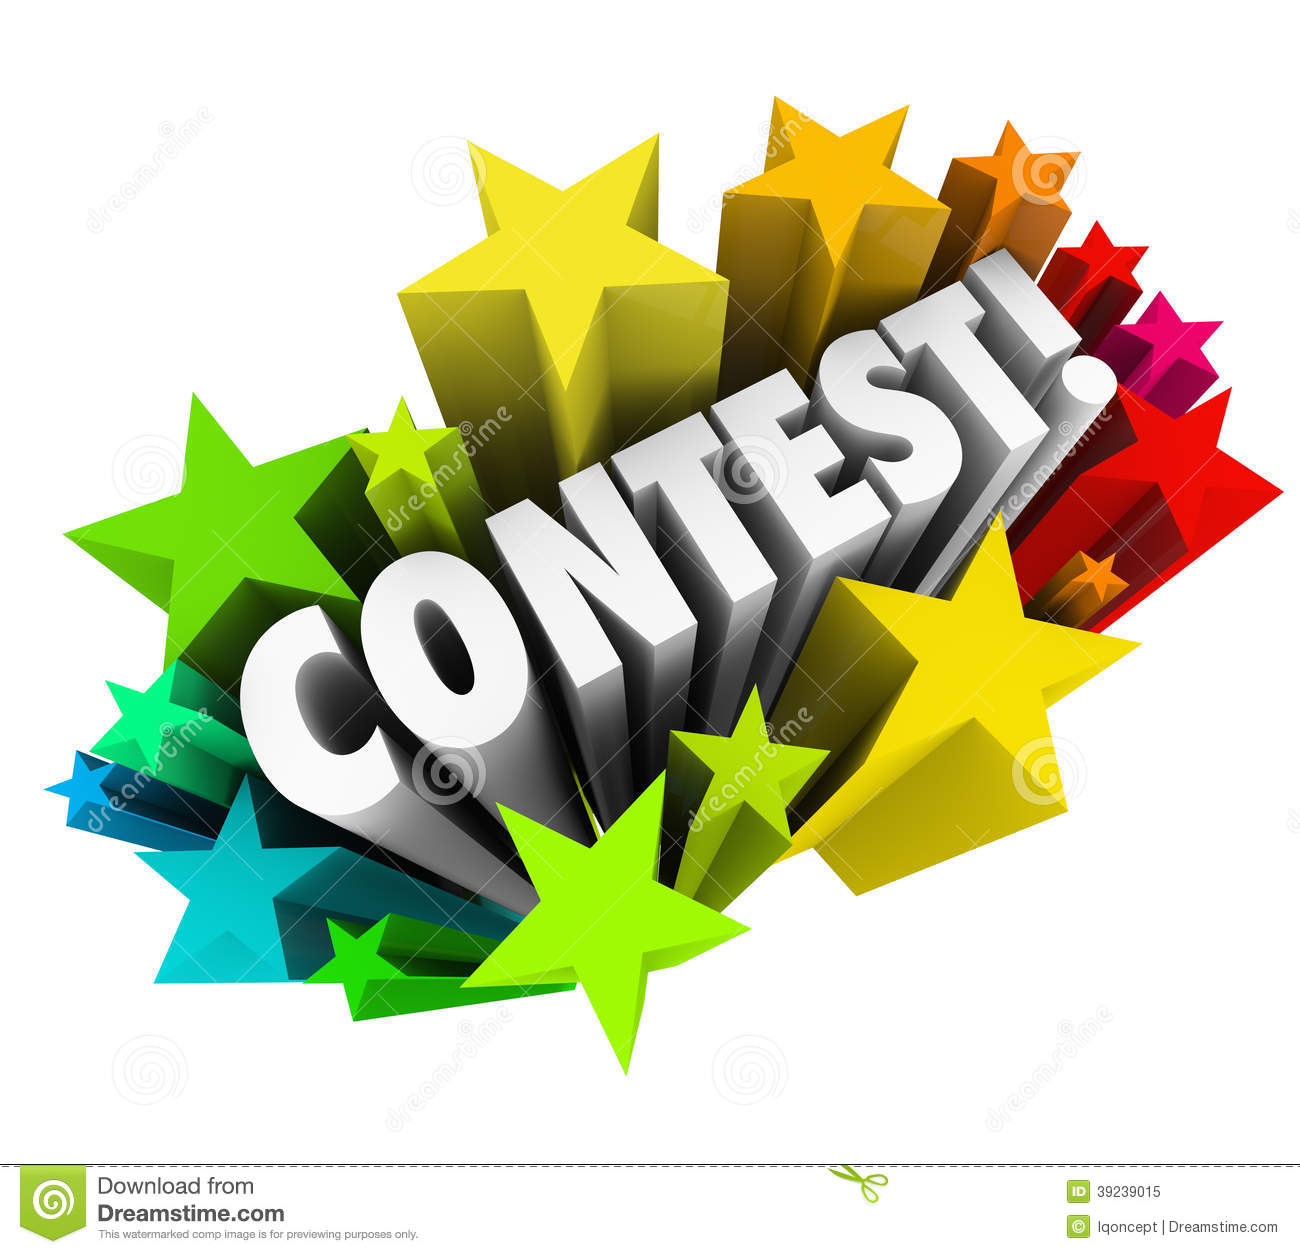 Contest Word Stars Fireworks Exciting Ra-Contest Word Stars Fireworks Exciting Raffle Drawing News Royalty Free Stock Photo-3